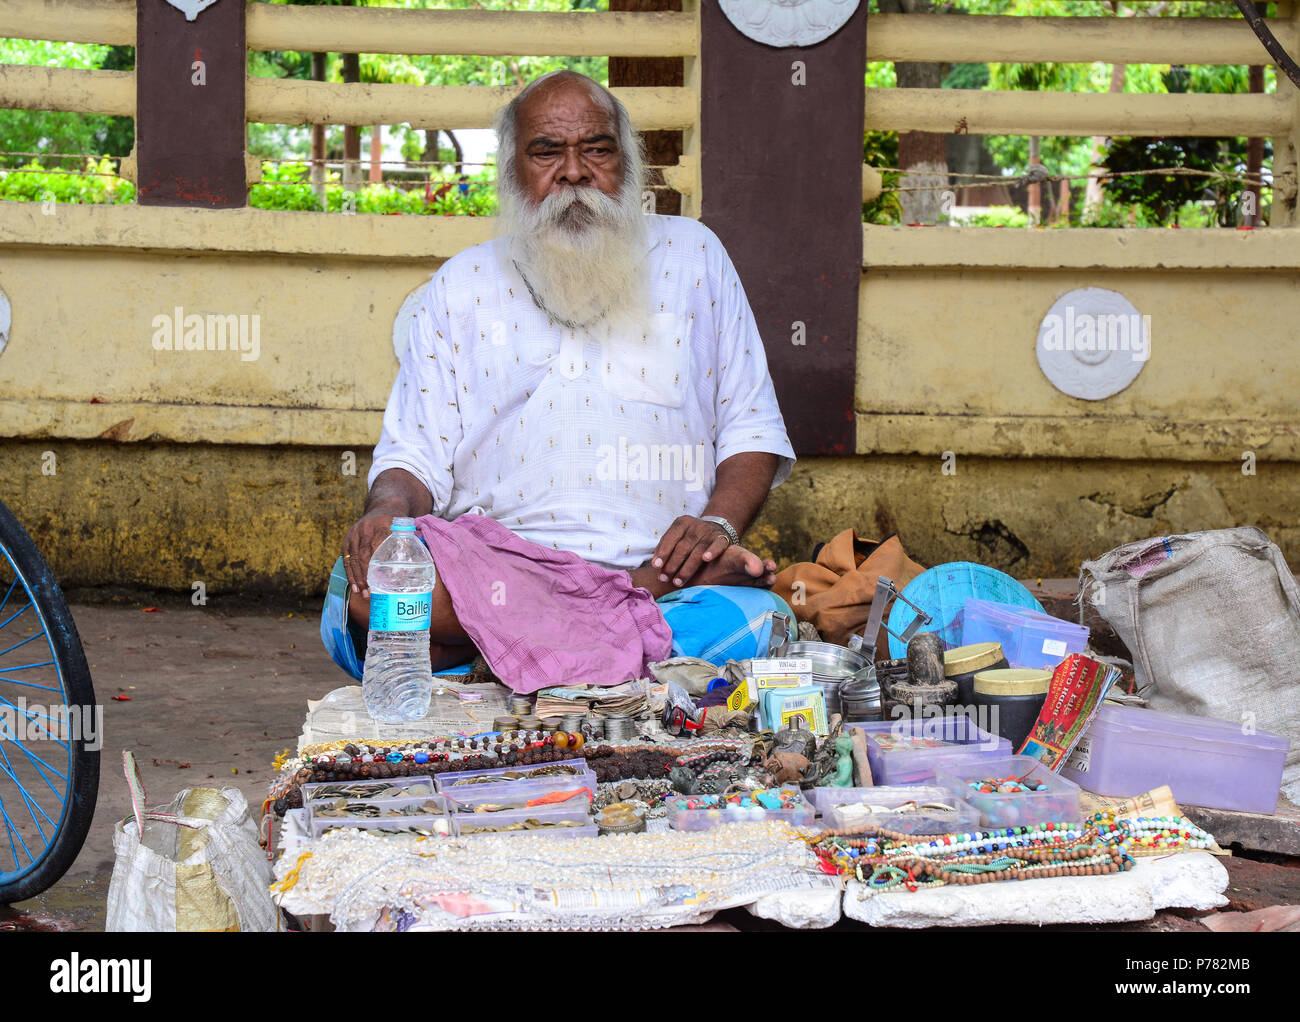 Bodhgaya, India - July 9, 2015. Vendor at street market in Bodhgaya, India. Bodhgaya is the most revered of all Buddhist sacred sites. - Stock Image